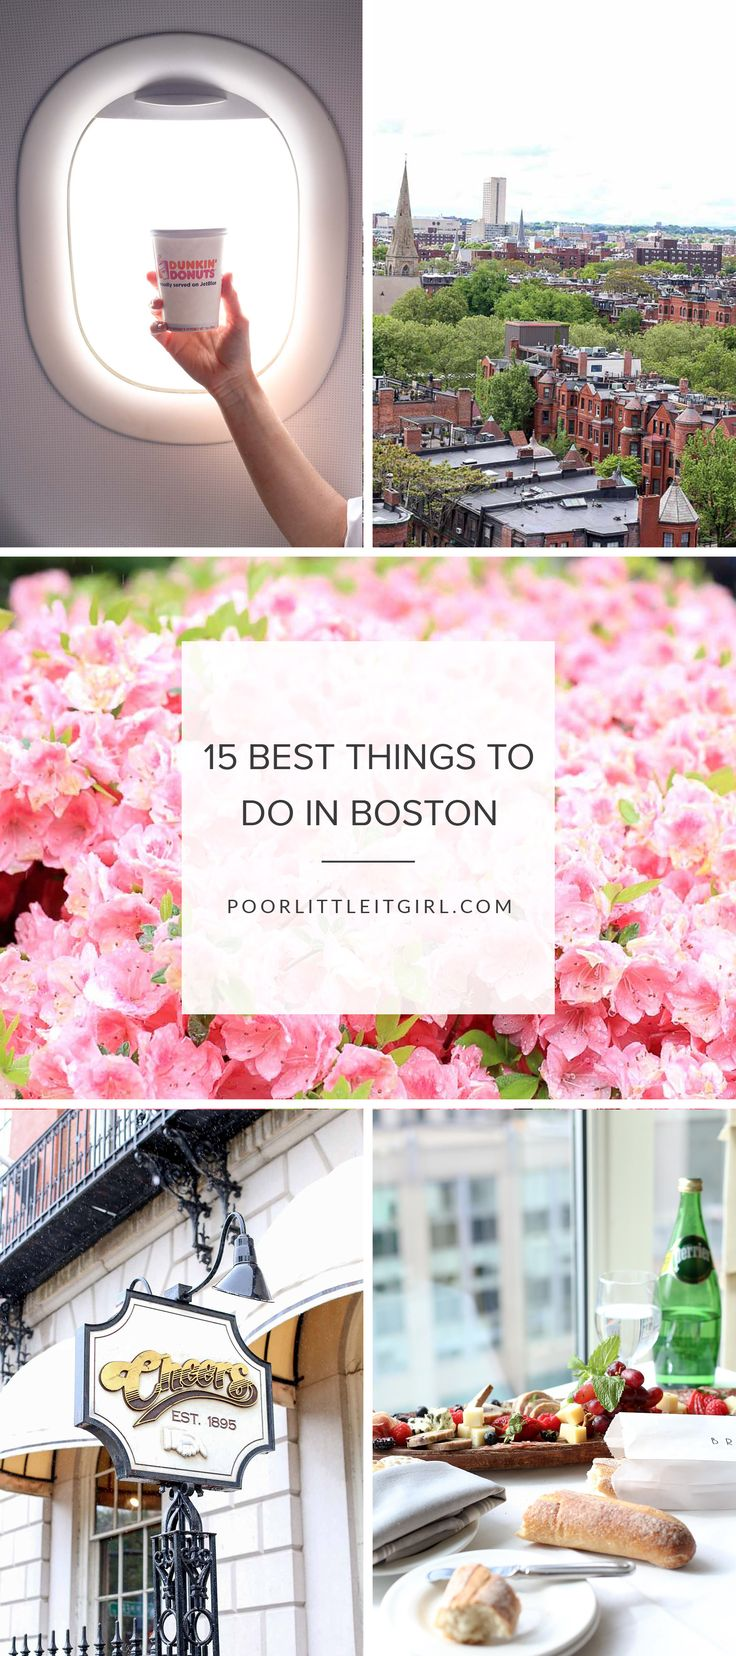 The 15 Best Things To Do In Boston - Travel Guide